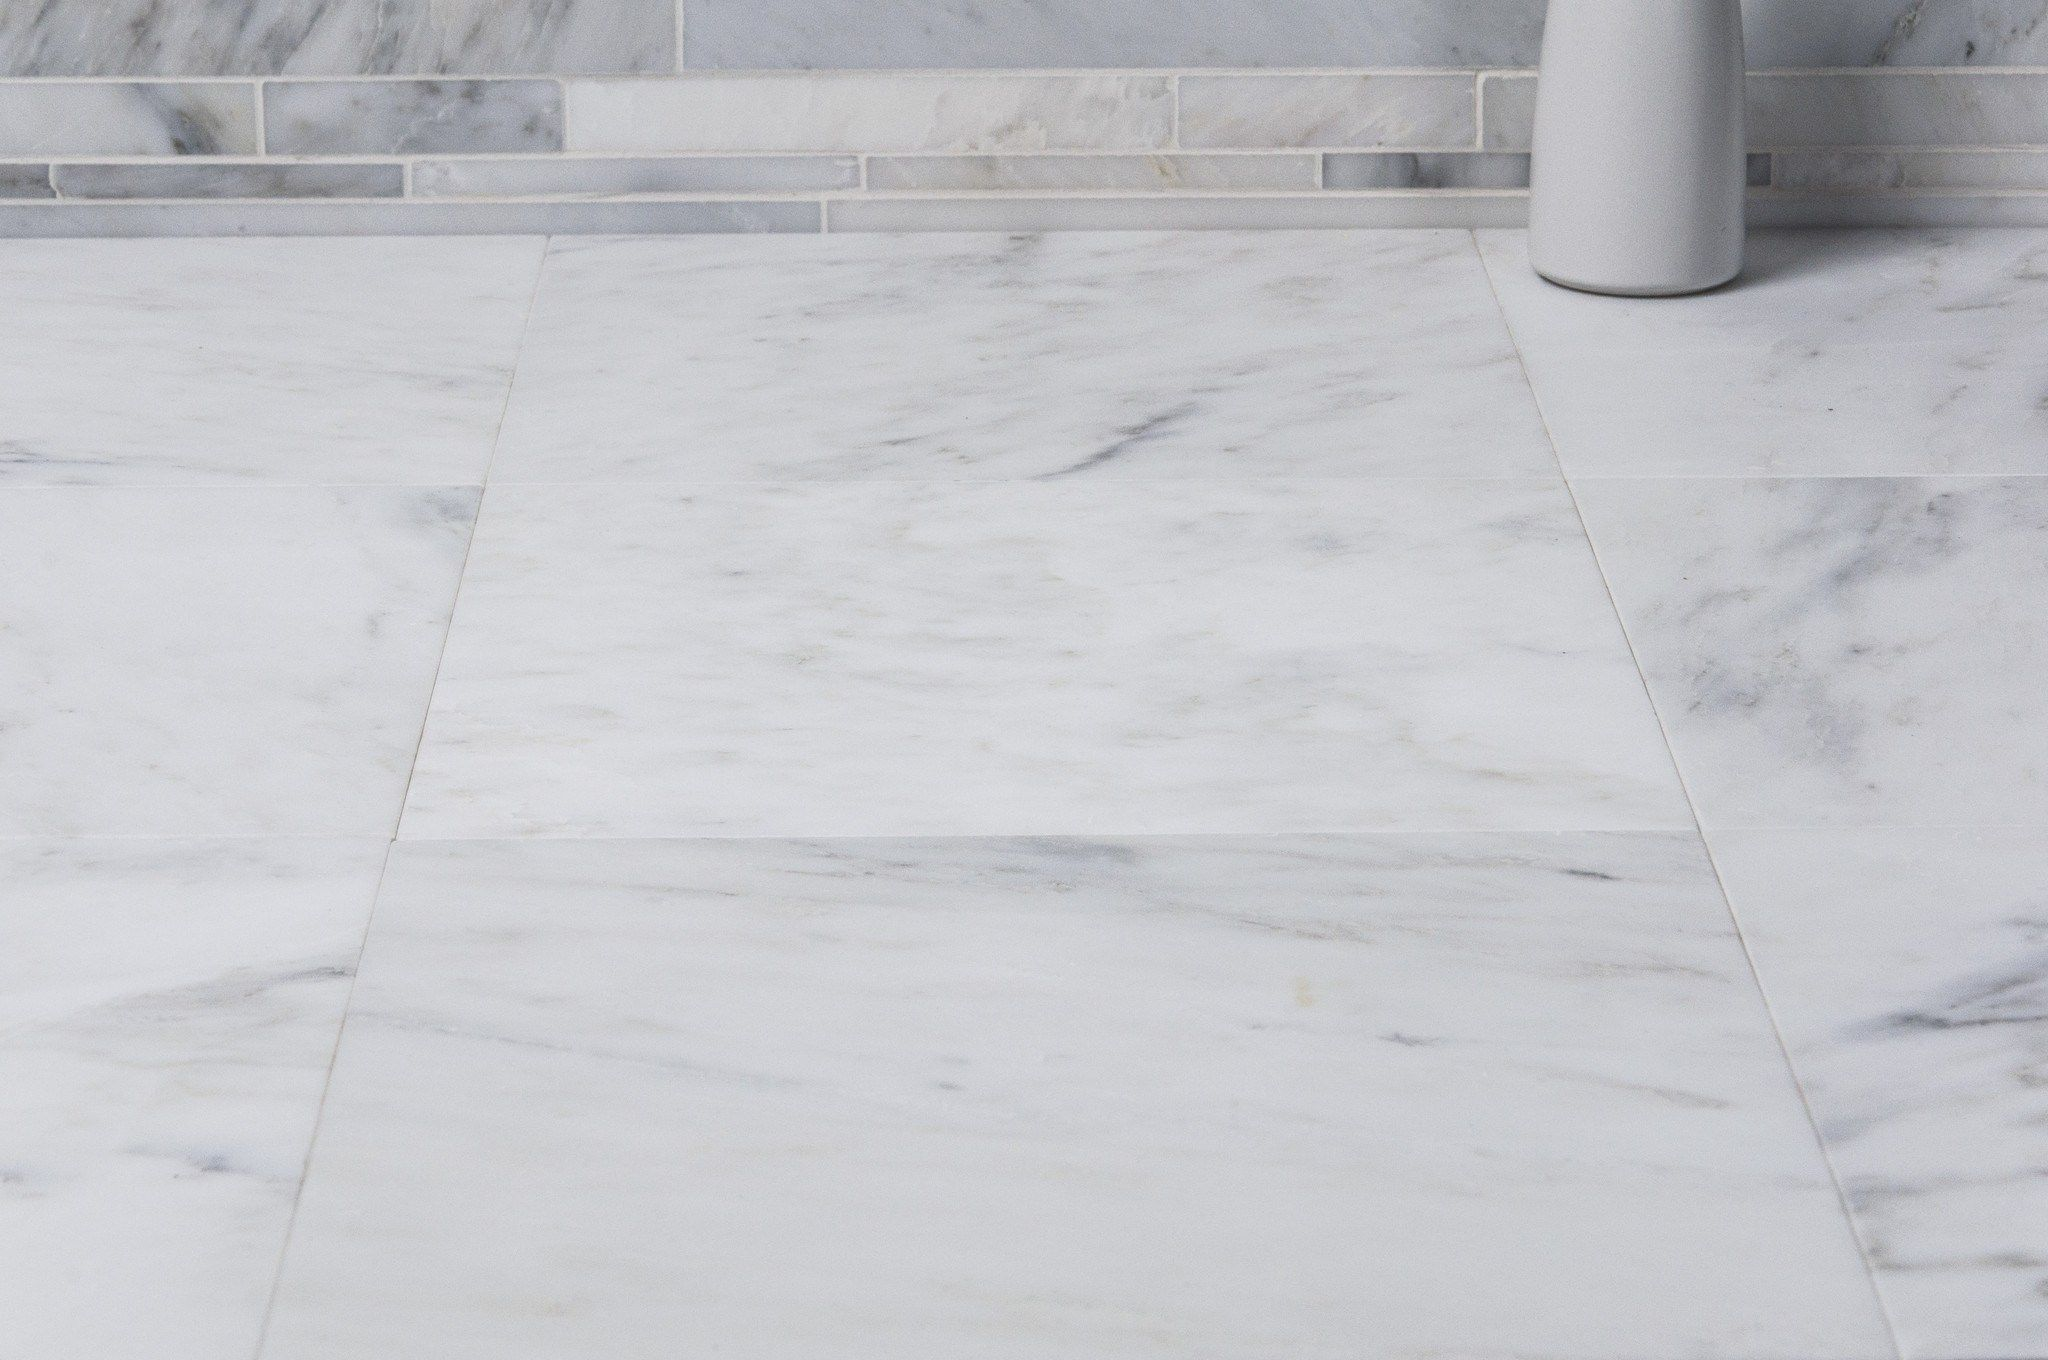 Carrara Venato Marble Wall And Floor Field Tile In Various Sizes And Finishes Marble Tile Floor Marble Bathroom Trendy Bathroom Tiles